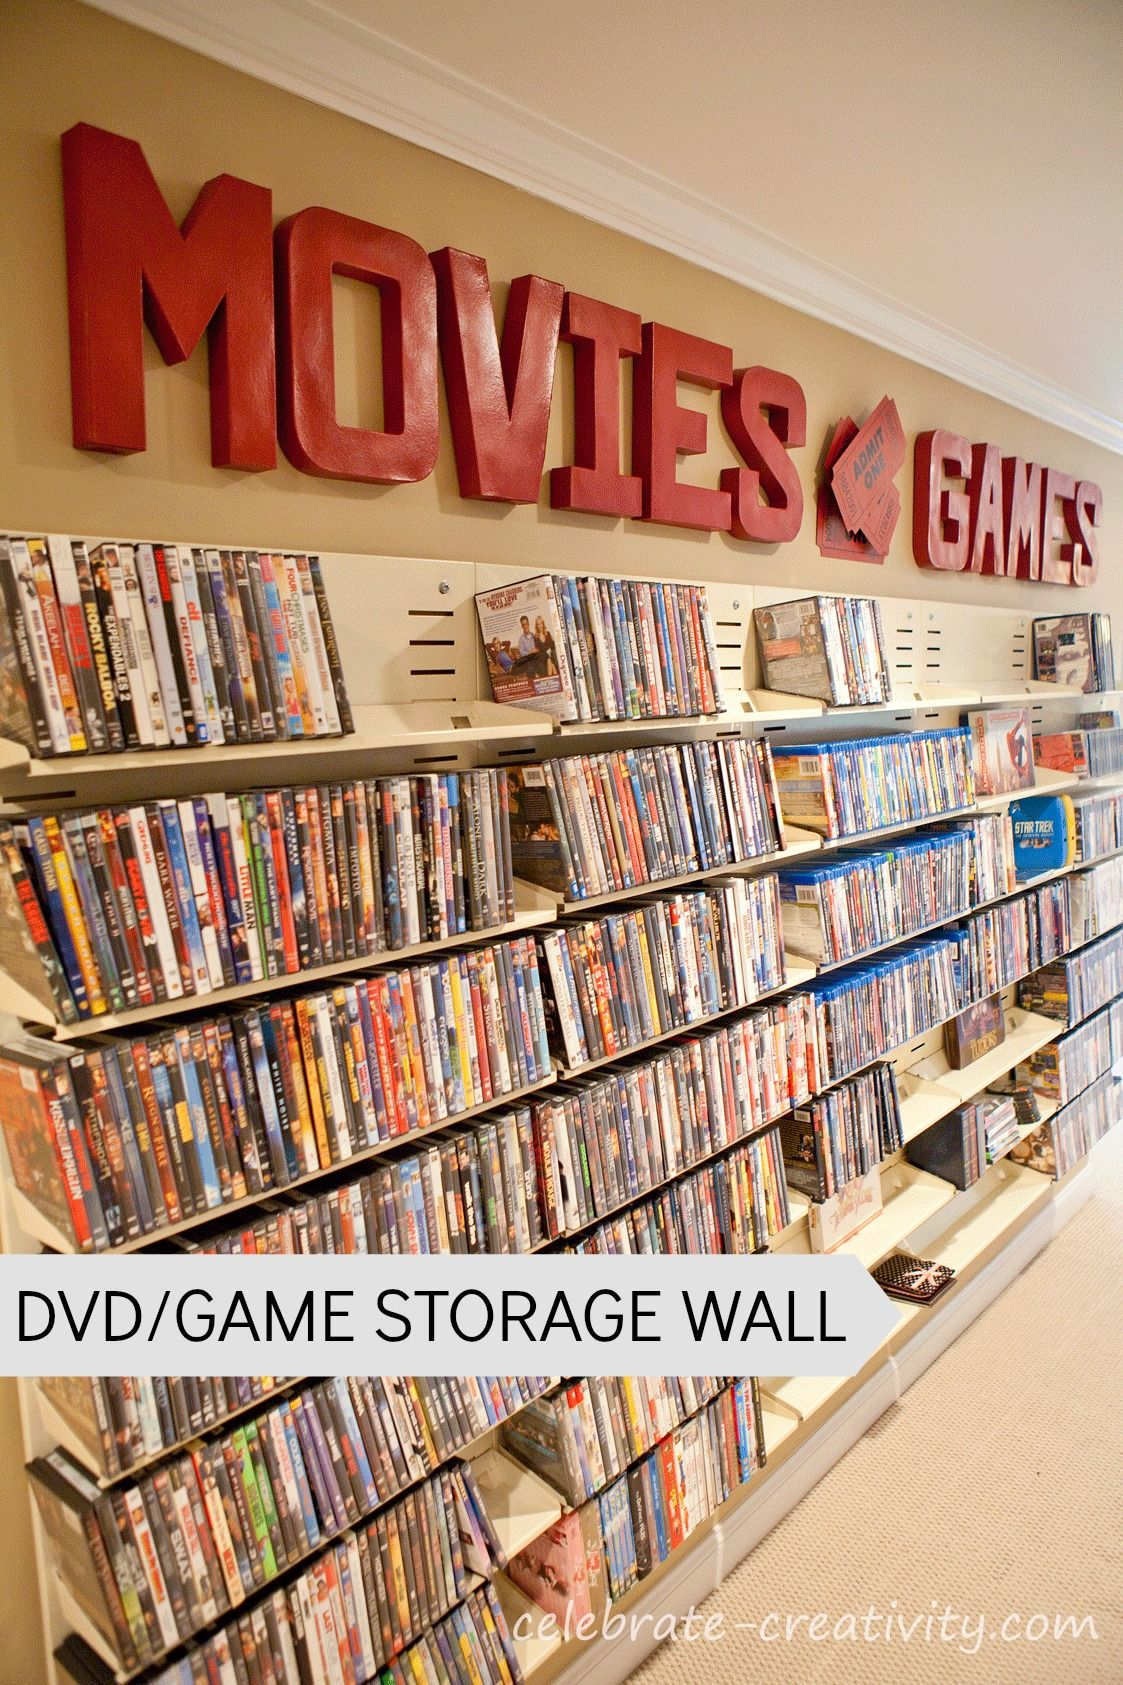 Dvd Wall Storage Diy Dvd Game Library Wall Organization And Storage